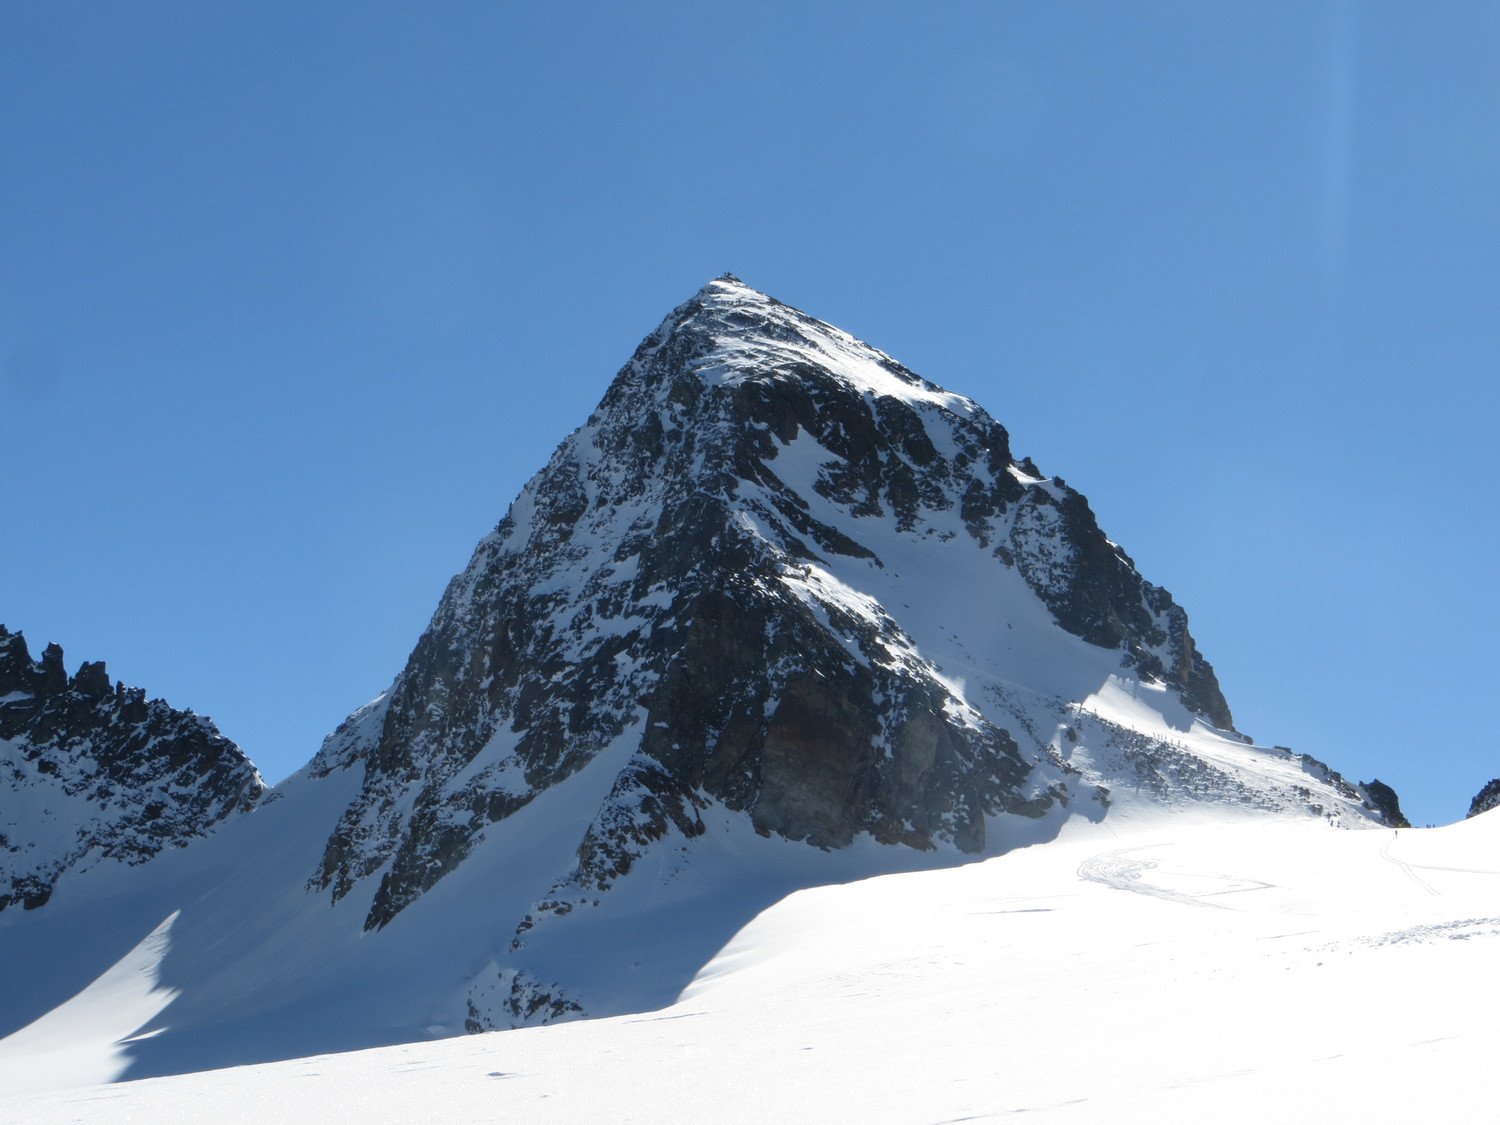 Piz Buin, NW ridge and Fuorcla Buin (right)